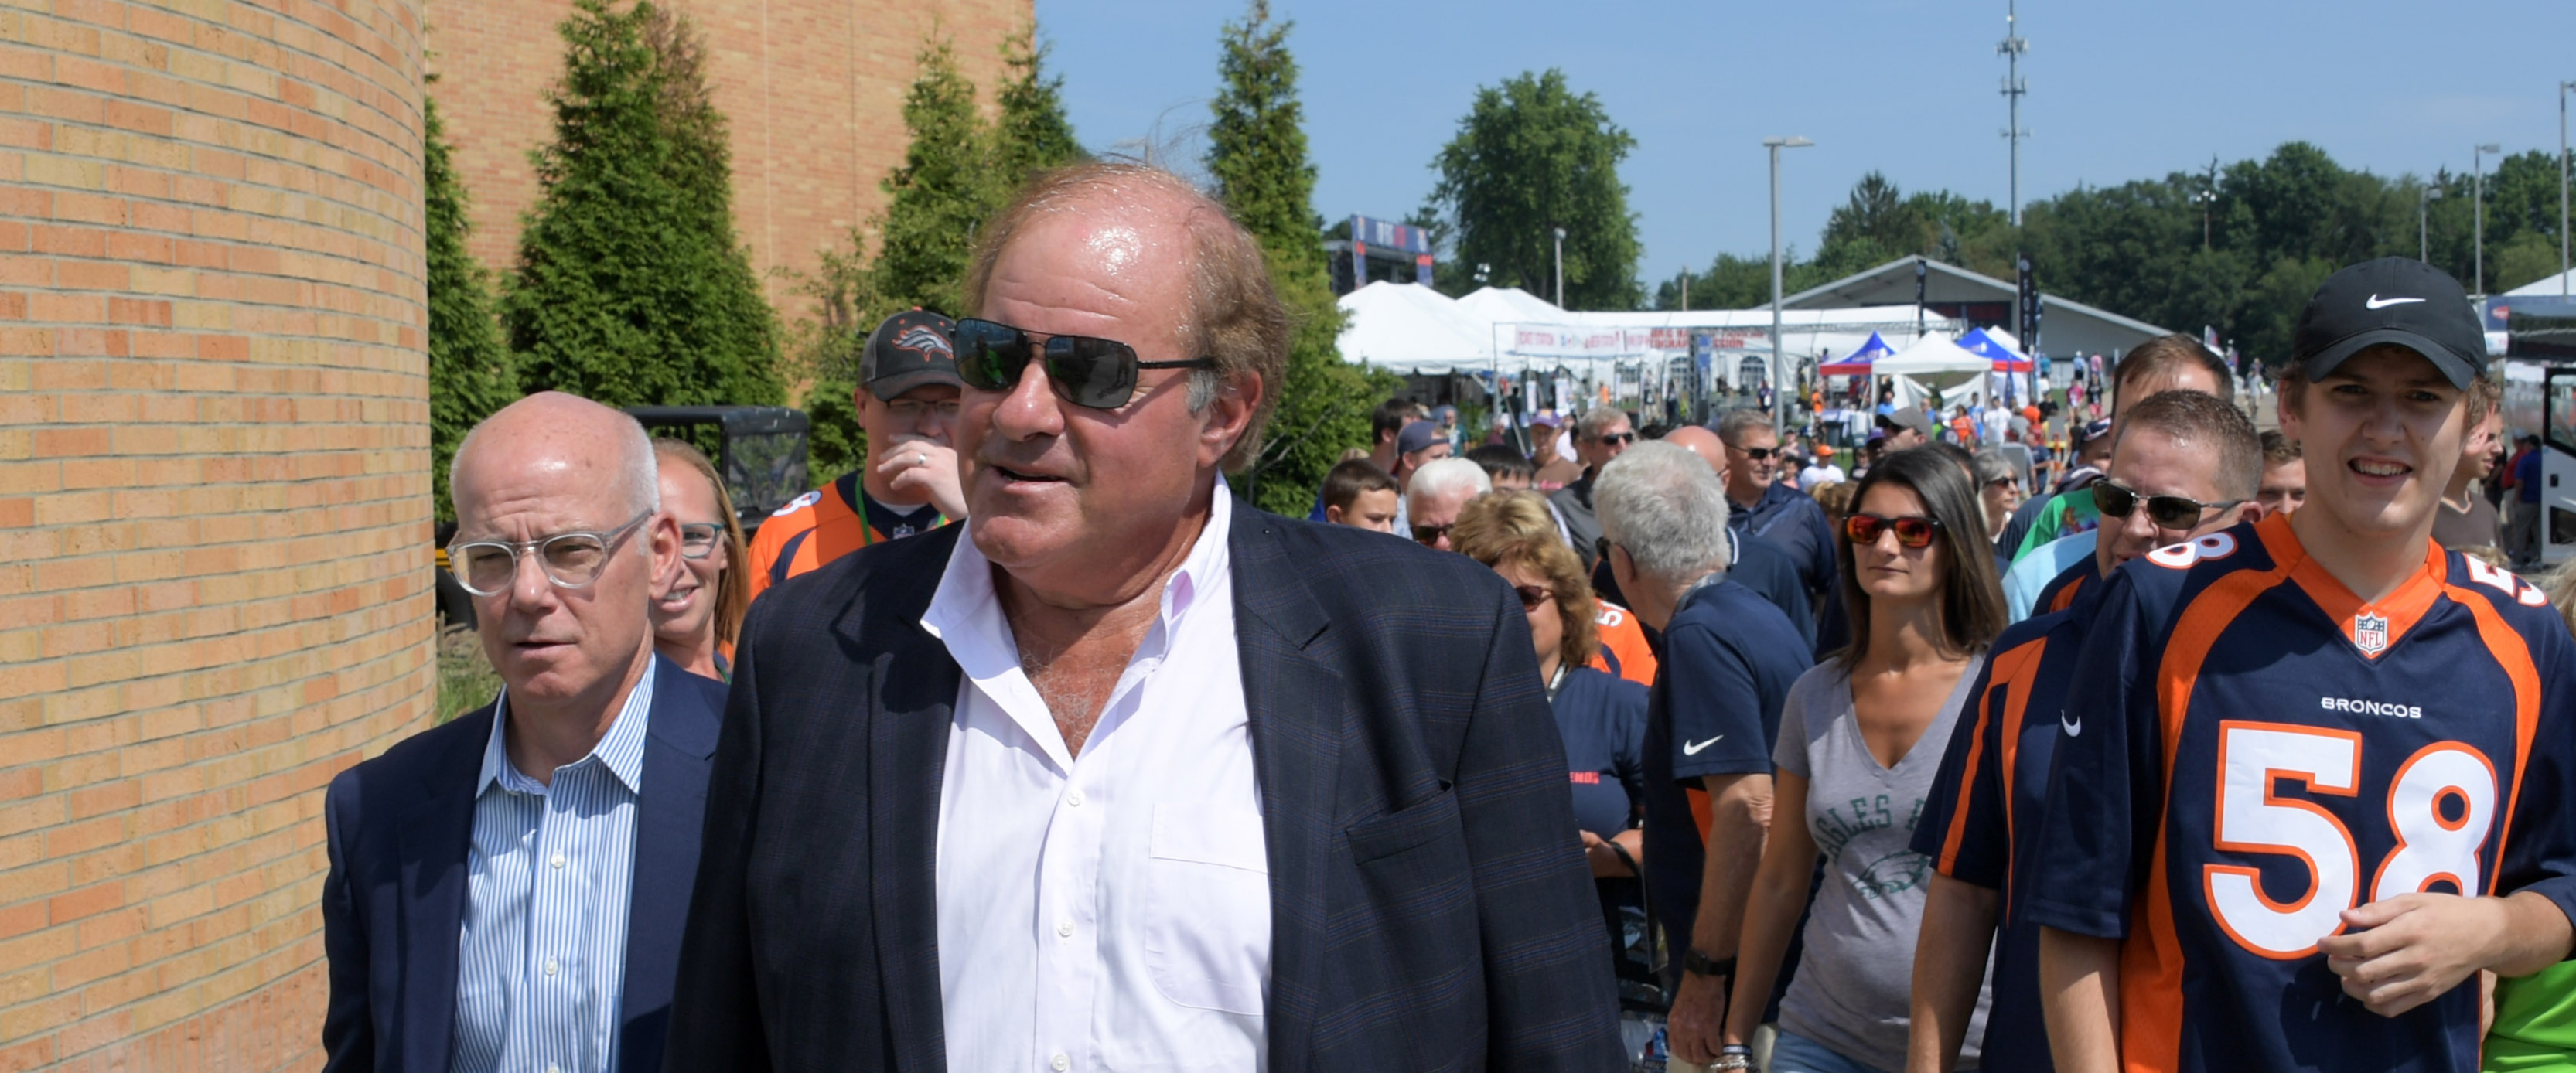 CAN'T MISS: Chris Berman renames CeeDee Lamb!